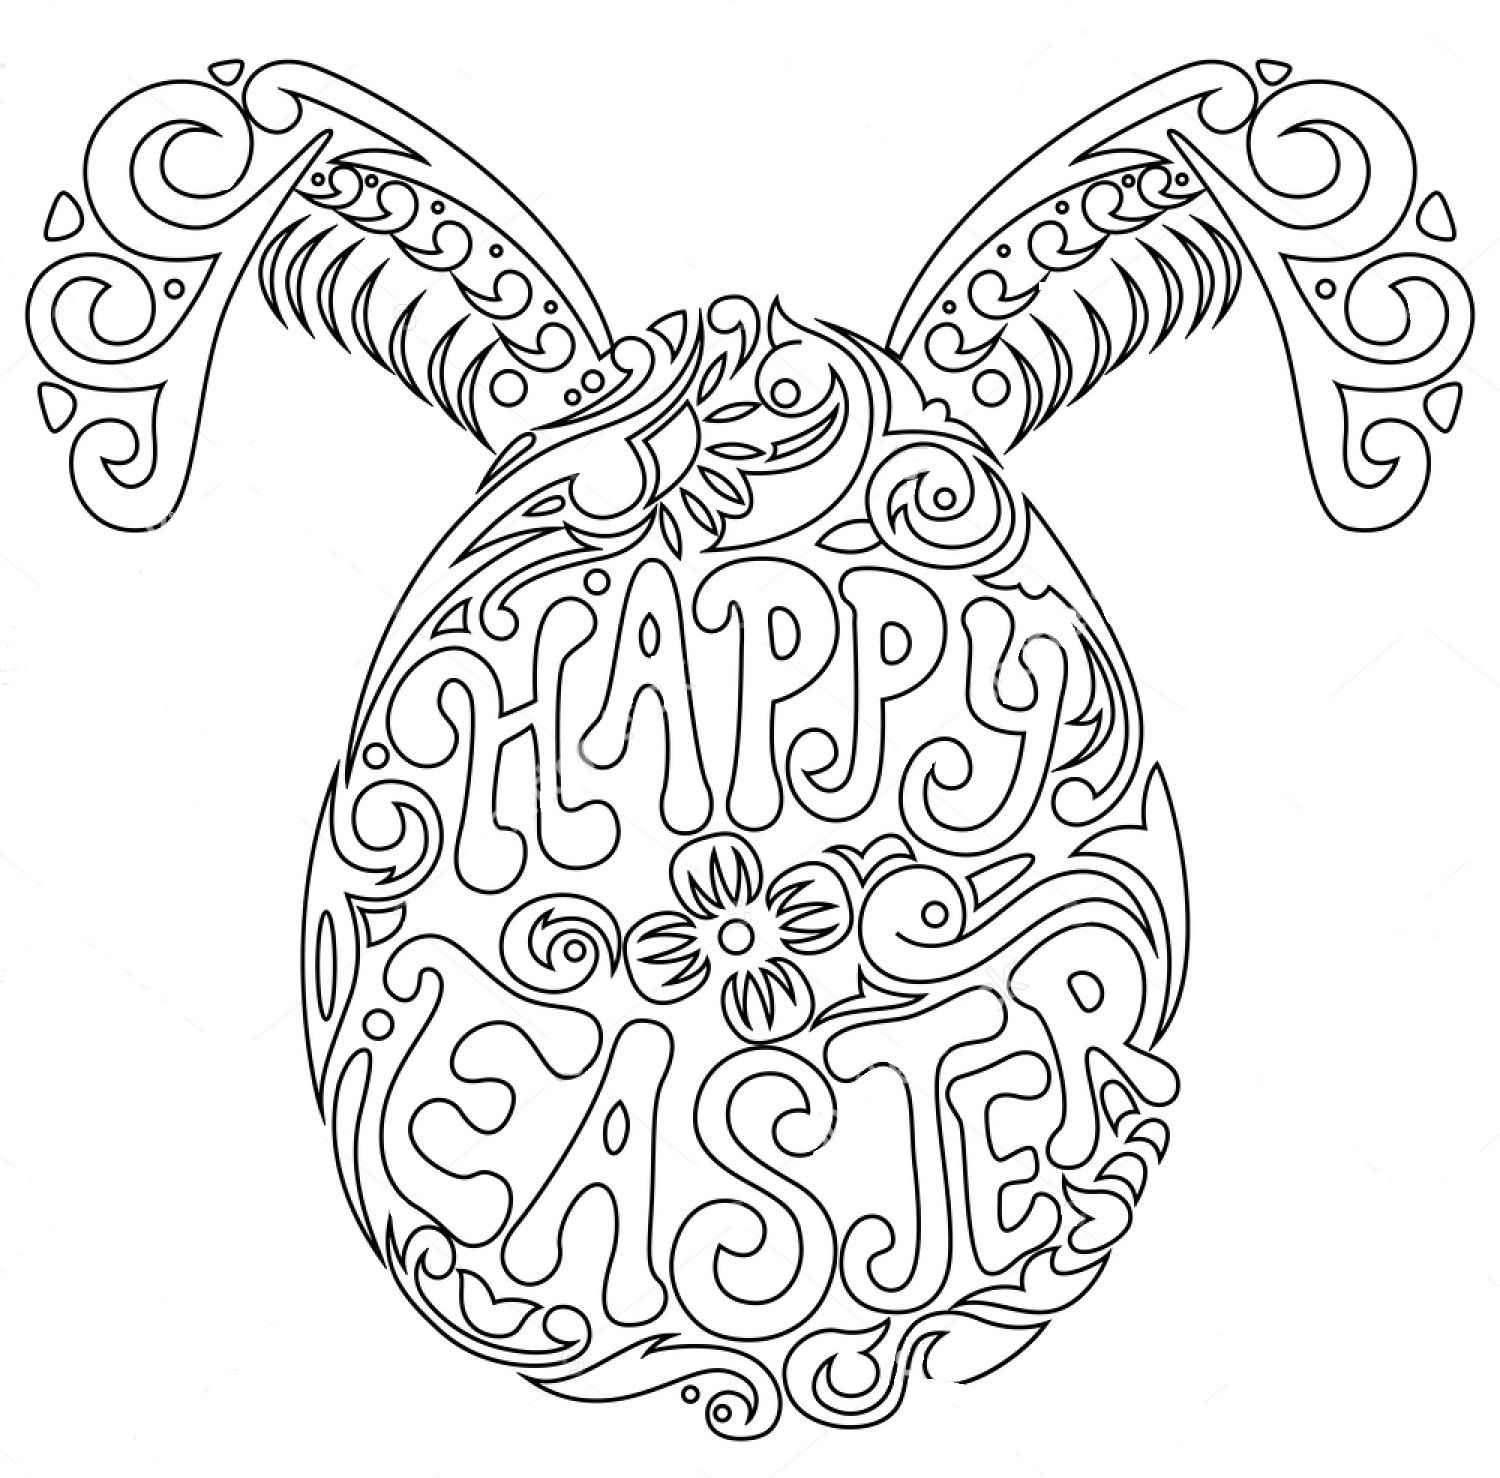 Happy Easter Zentangle Coloring Page Egg Coloring Page Coloring Easter Eggs Easter Egg Coloring Pages